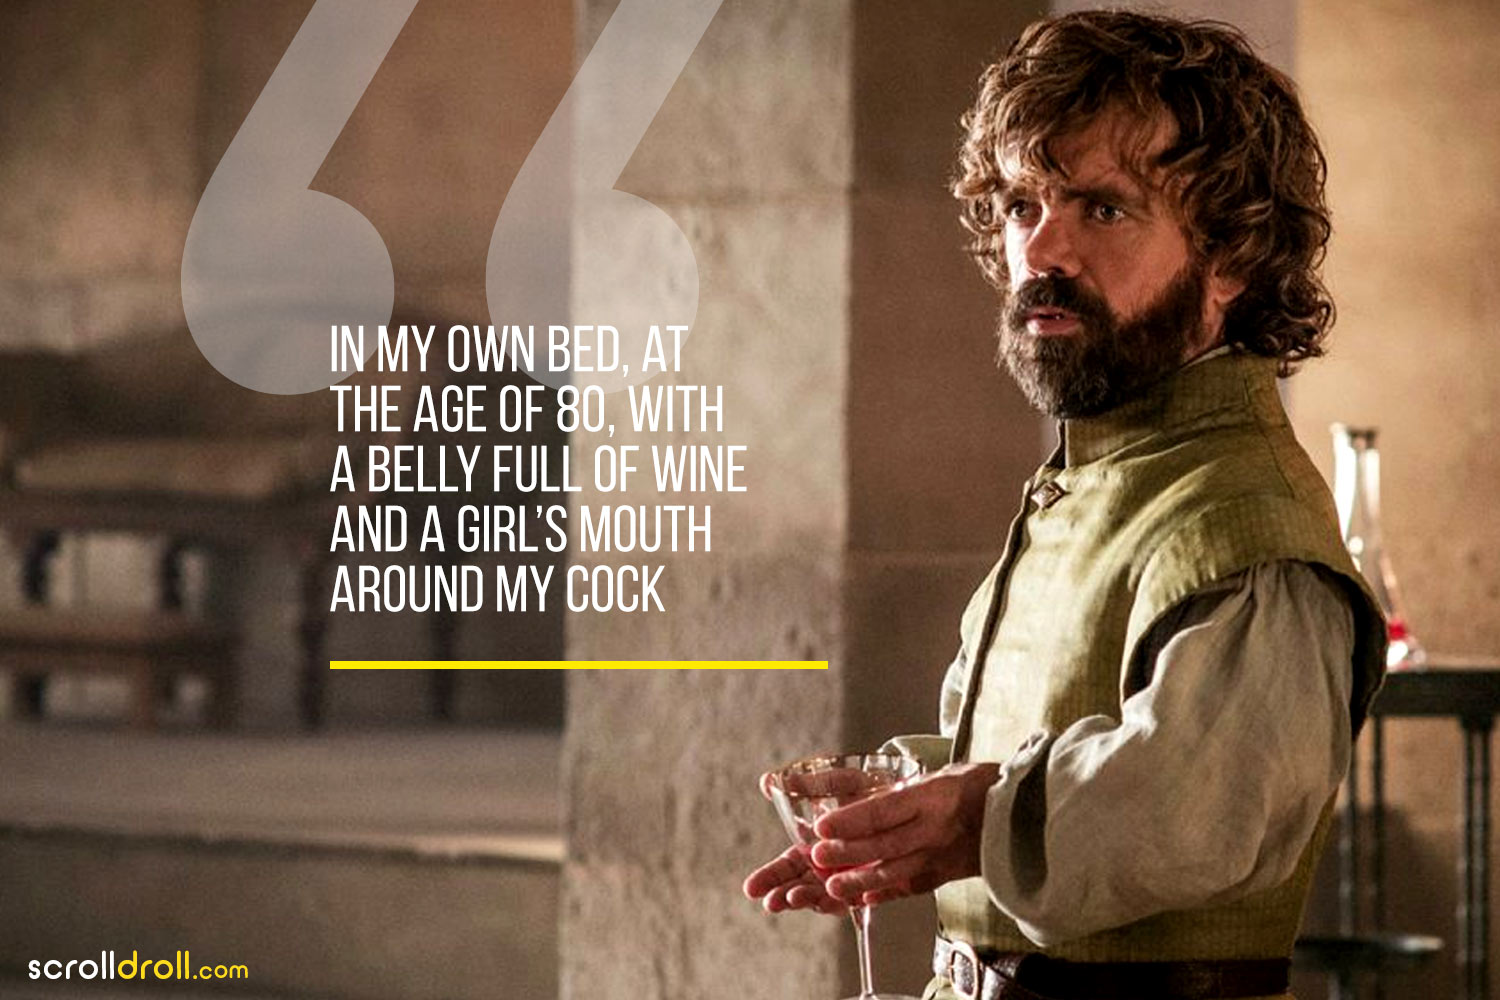 Tyrion-In my own bed,at the age of 80, with a belly full of wine and a girls mouth around my cock